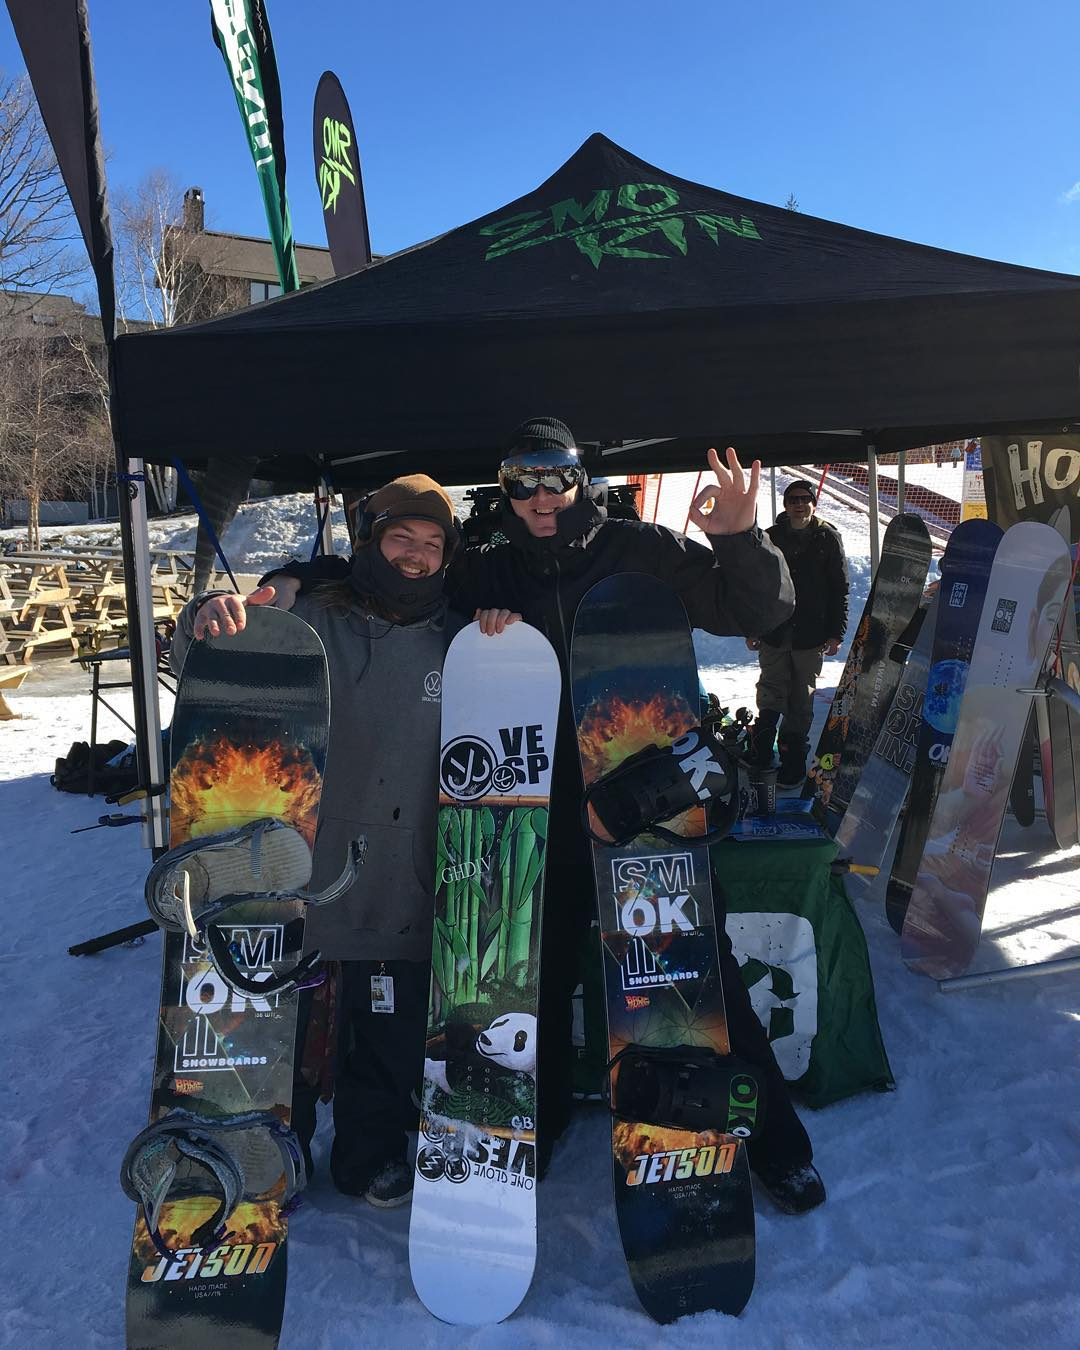 Having a great demo day @strattonresort , hanging with @andrew_j_parsons , the panda graphic @gbpgremlinz board is his #model ,stoked to shred some laps here- the snow is great today. #weareOK | #futurefreeride | #Jetson | #handmadeUSA | #ghdiv |...